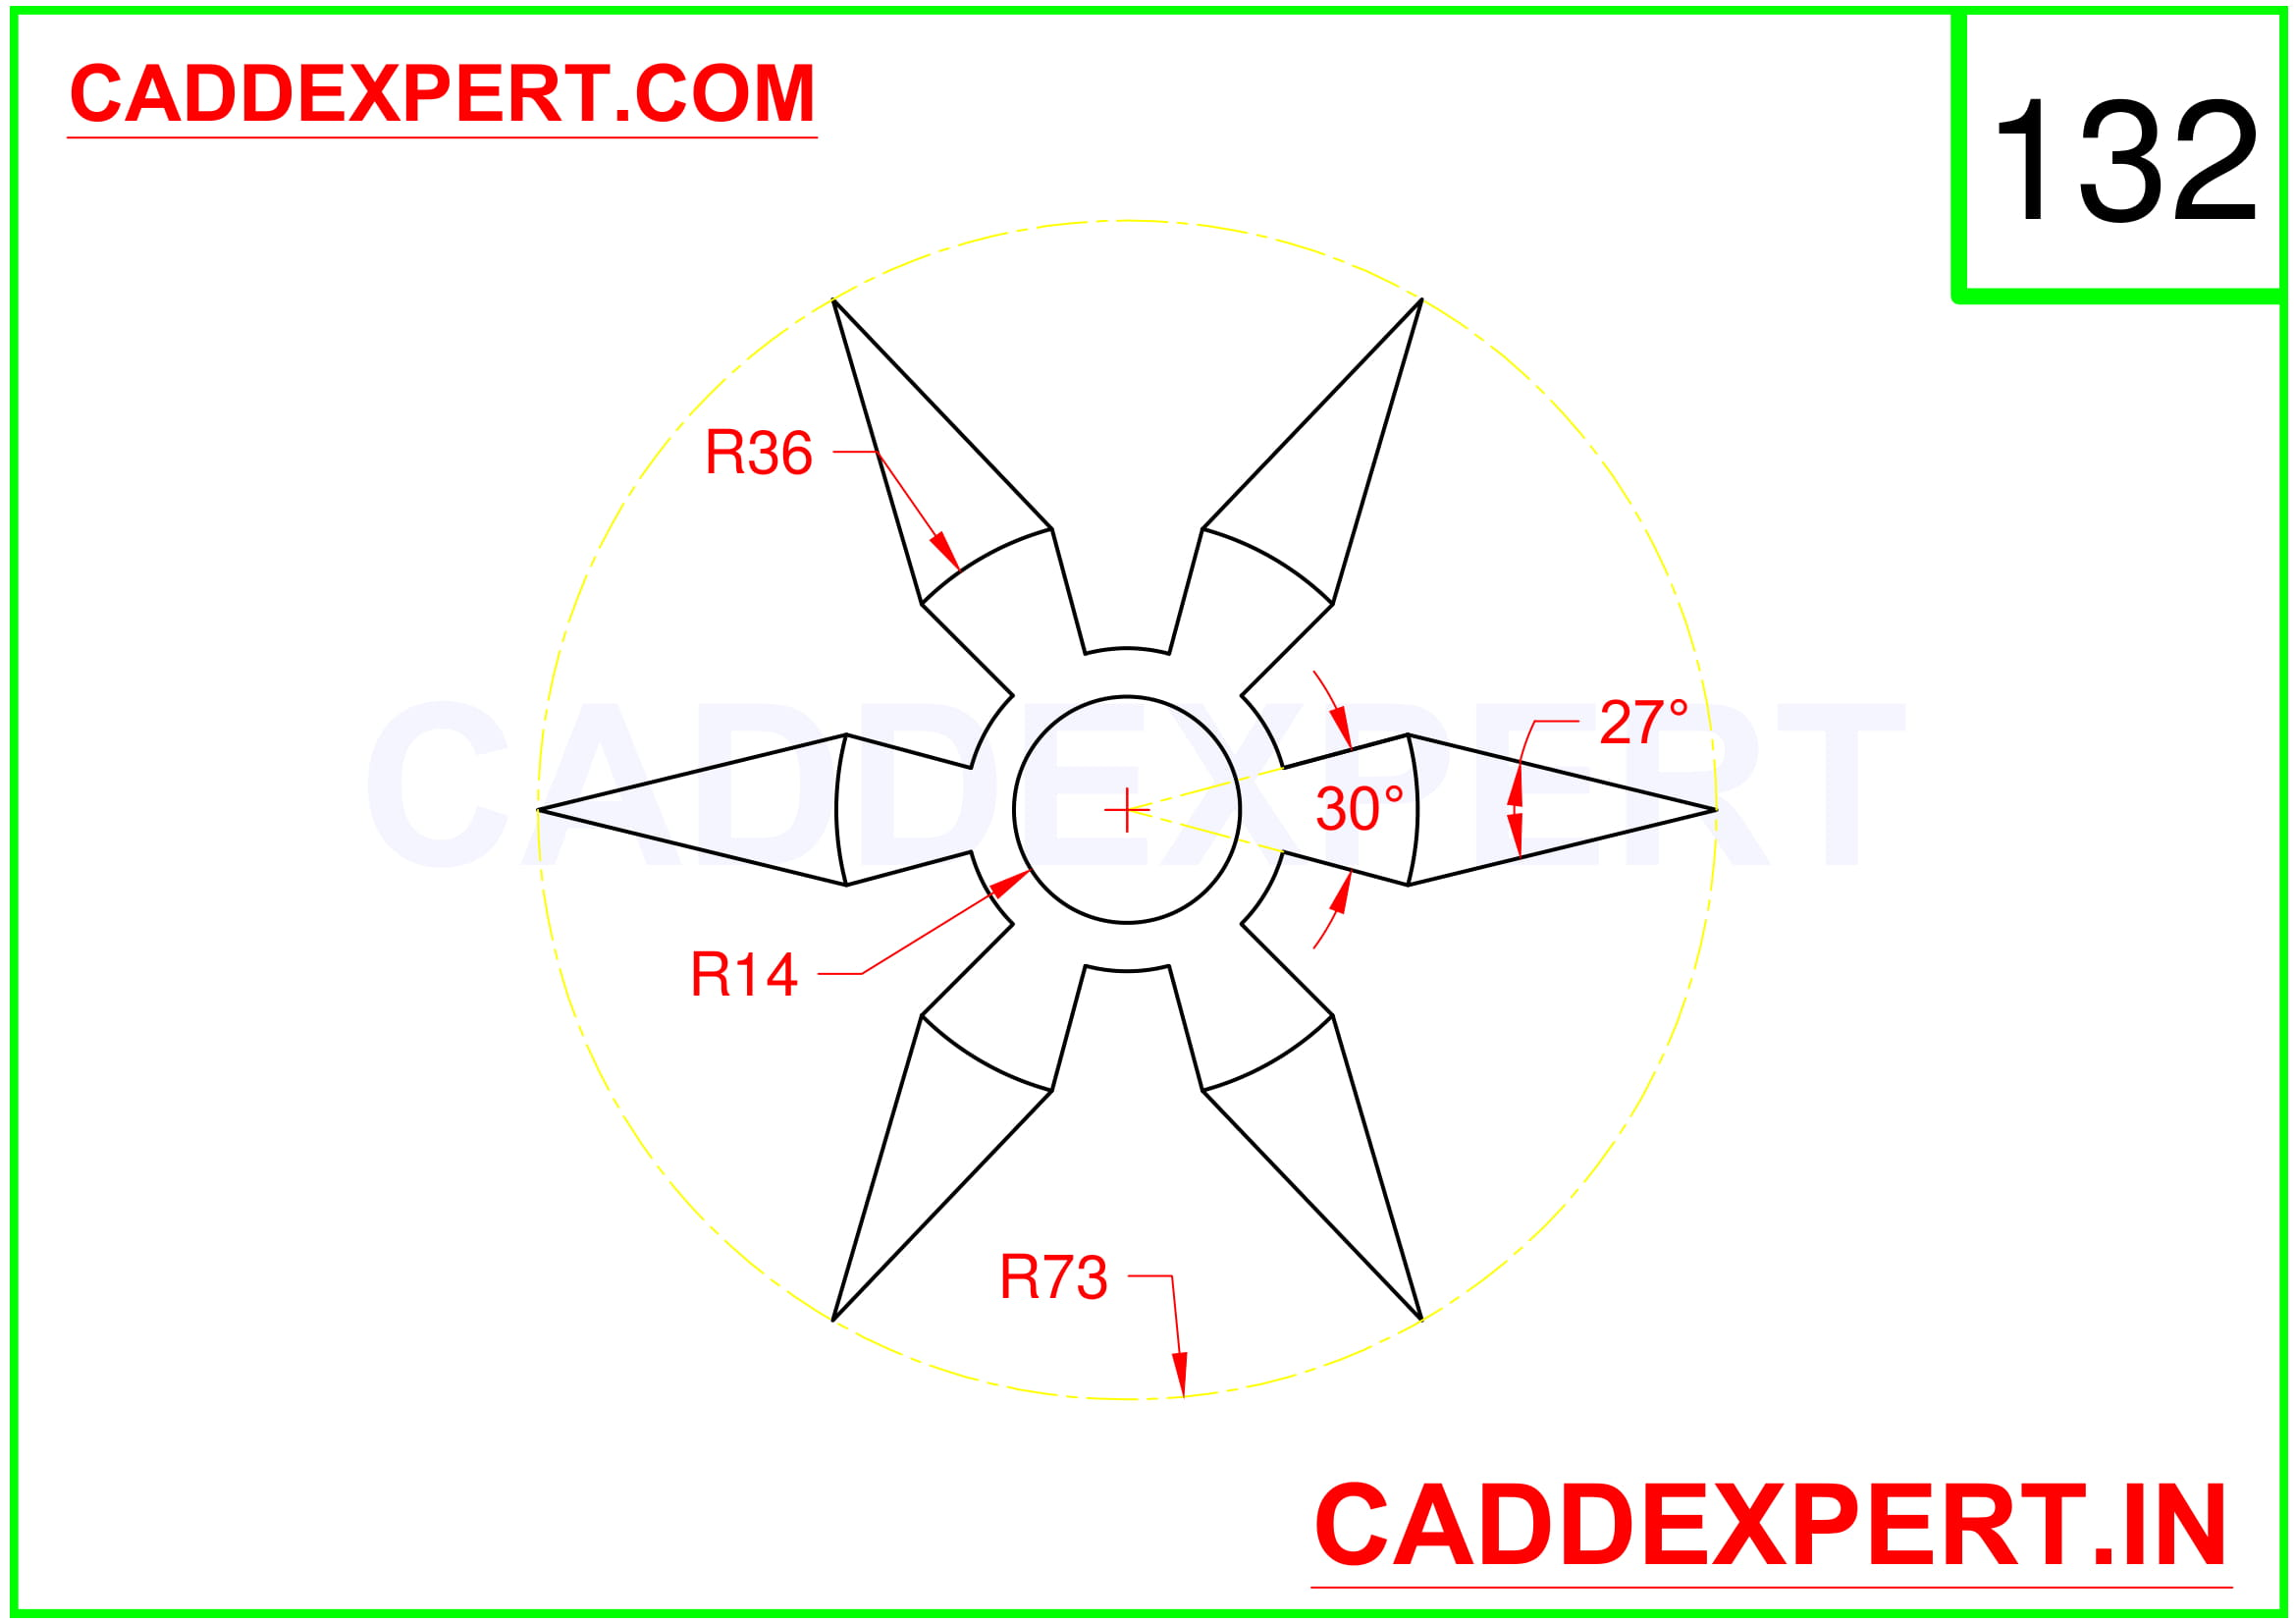 AUTOCAD 2D DRAWING IMAGE - 2